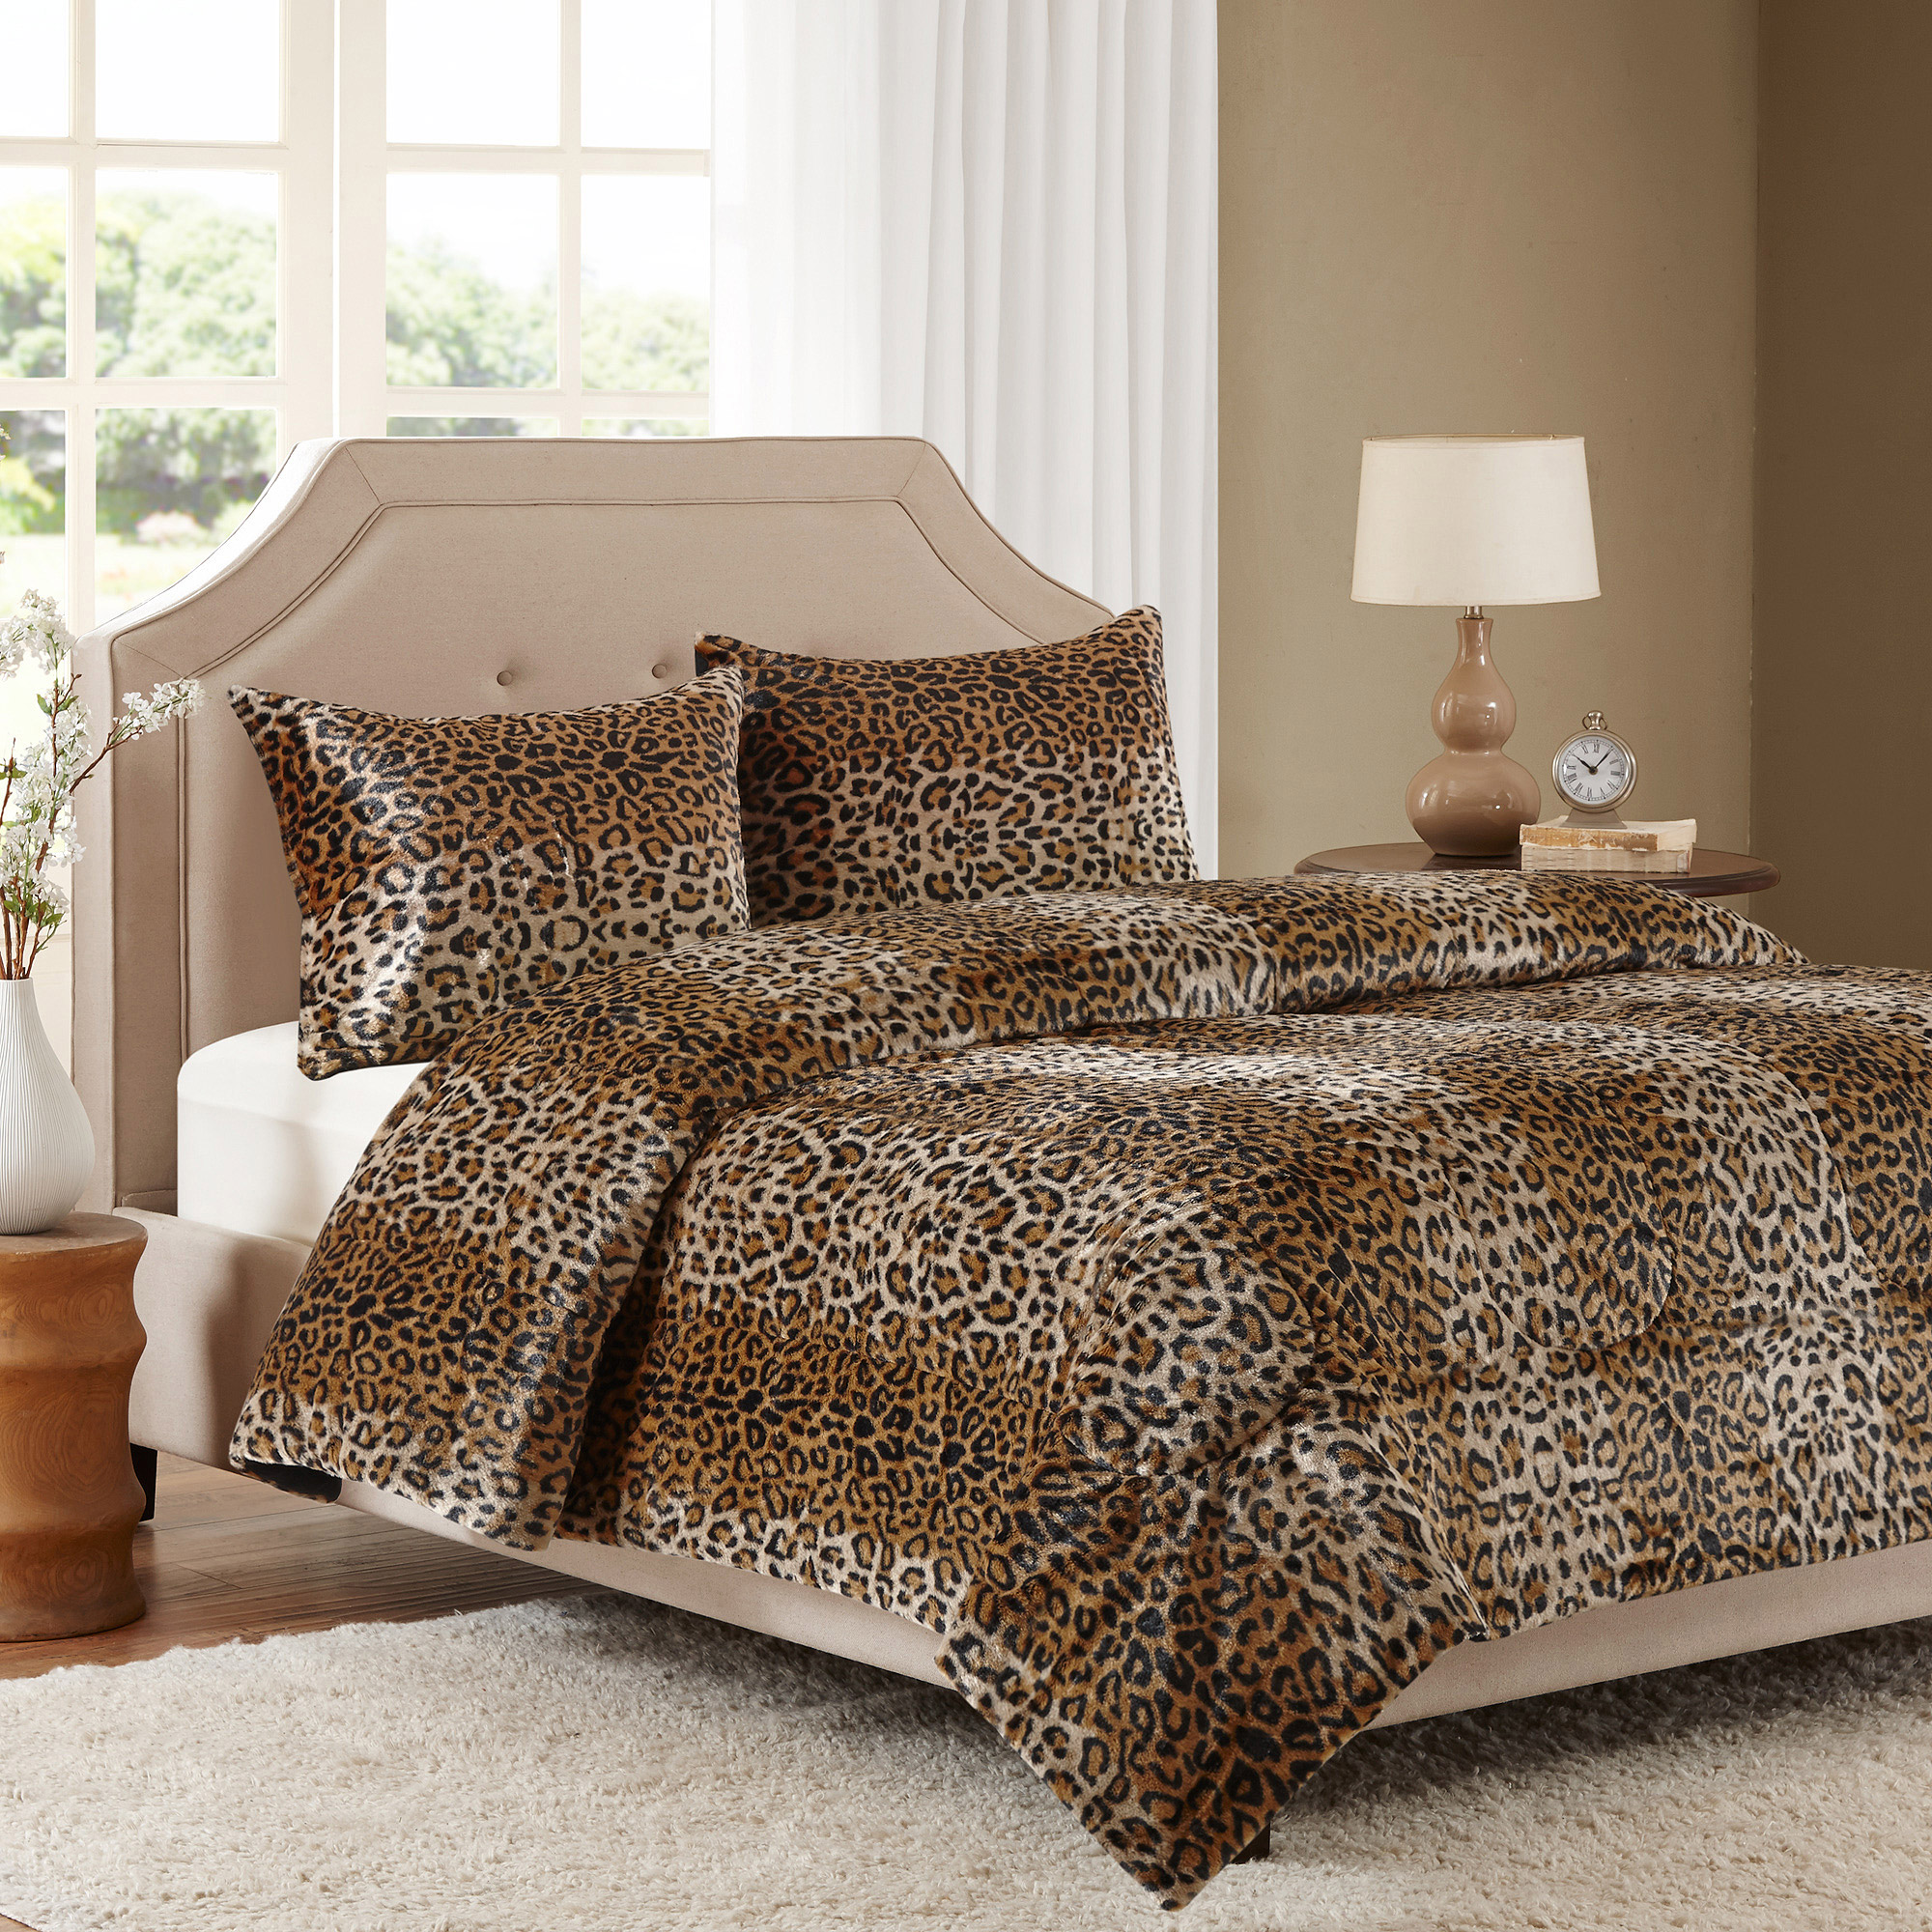 Better Homes and Gardens Faux Fur Bedding Comforter Mini Set